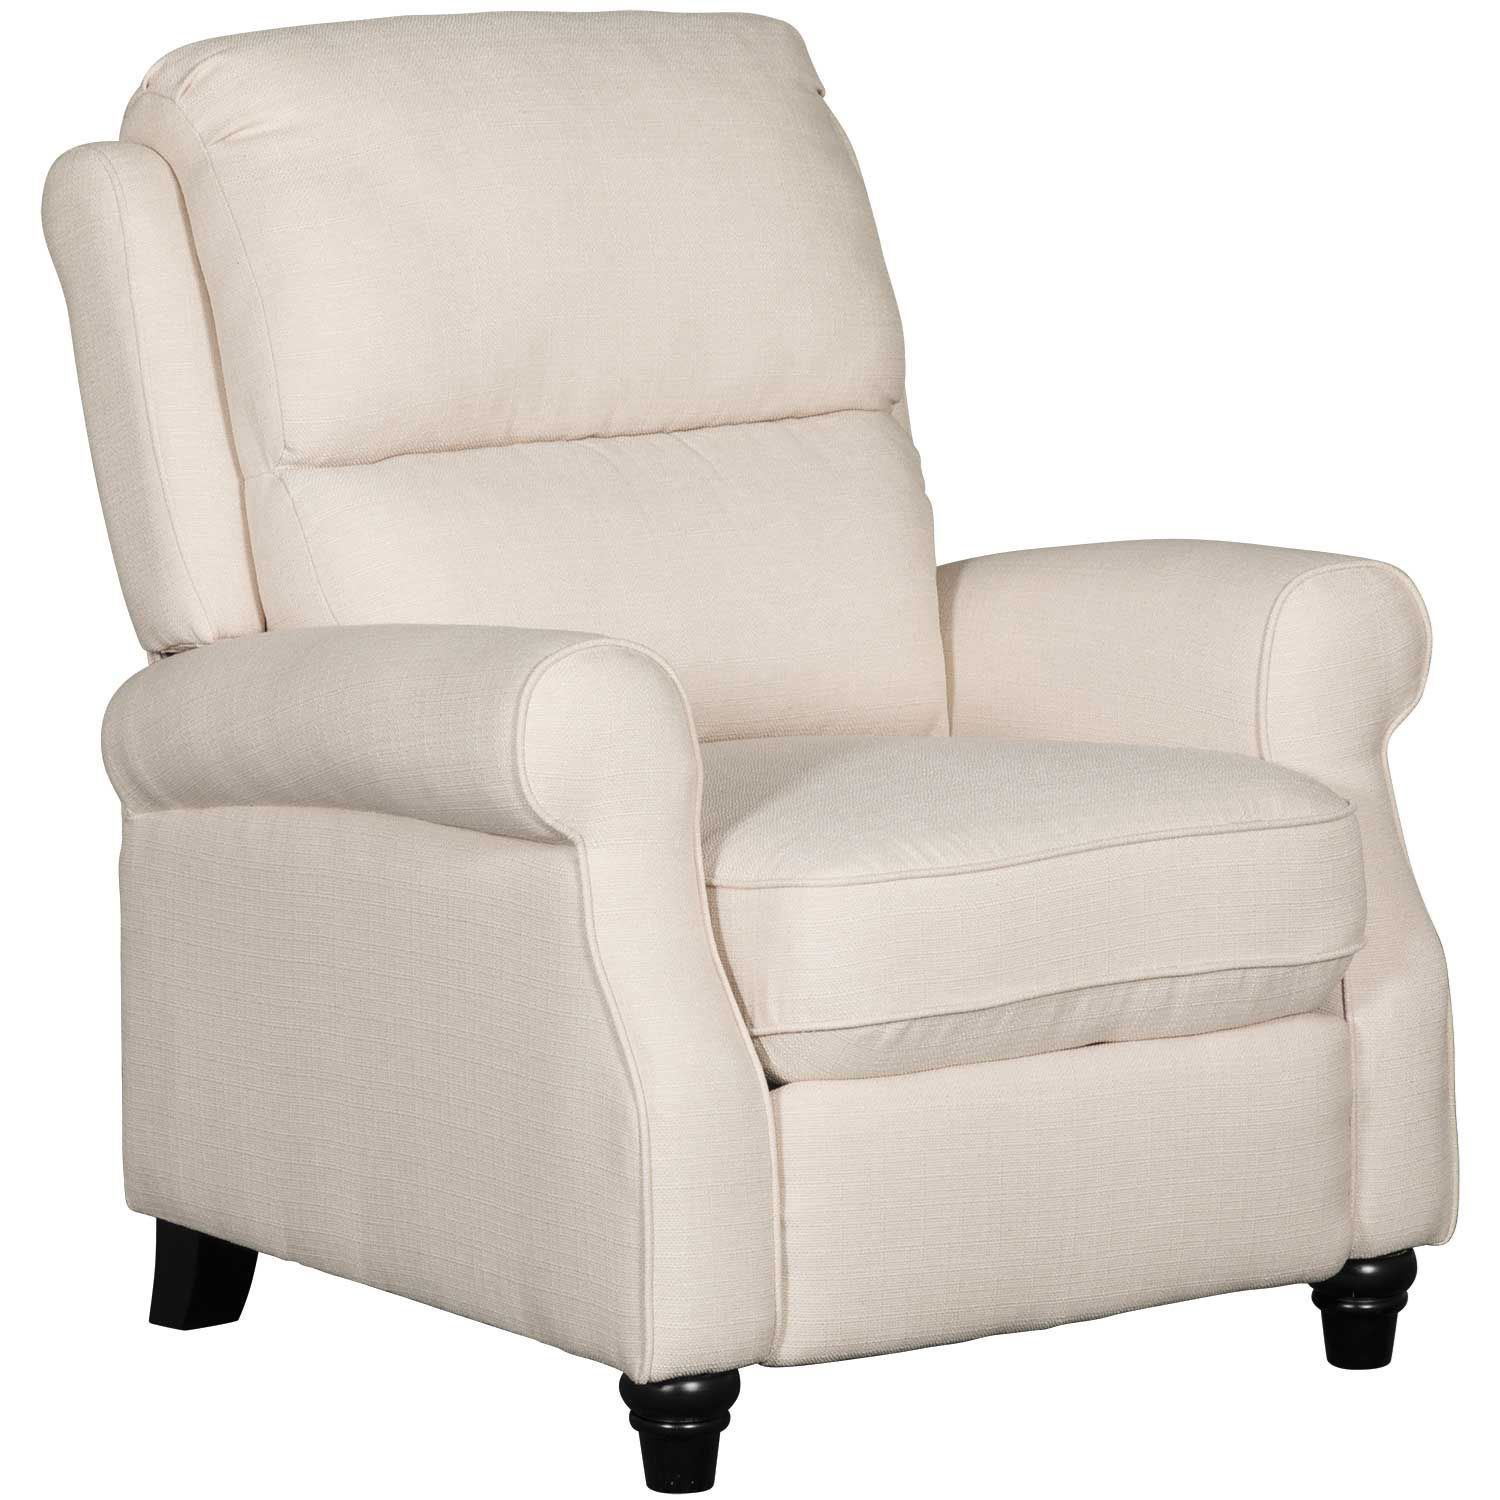 Recliner Chairs Best Prices Available! AFW Recliner